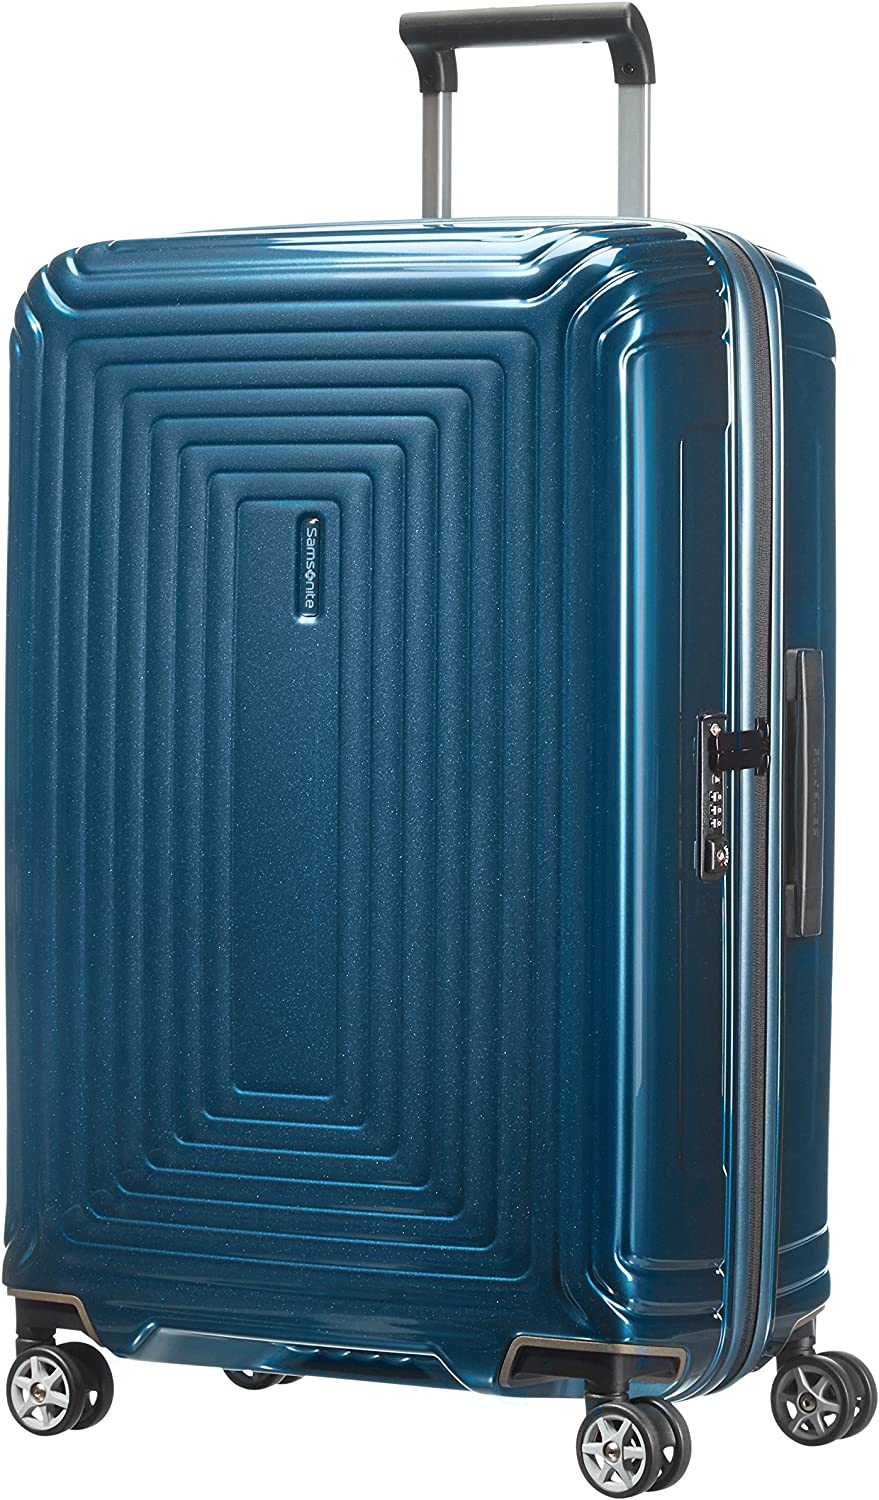 Samsonite Neopulse - Spinner M Maleta, 69 cm, 74 L, Azul (Metallic Blue)